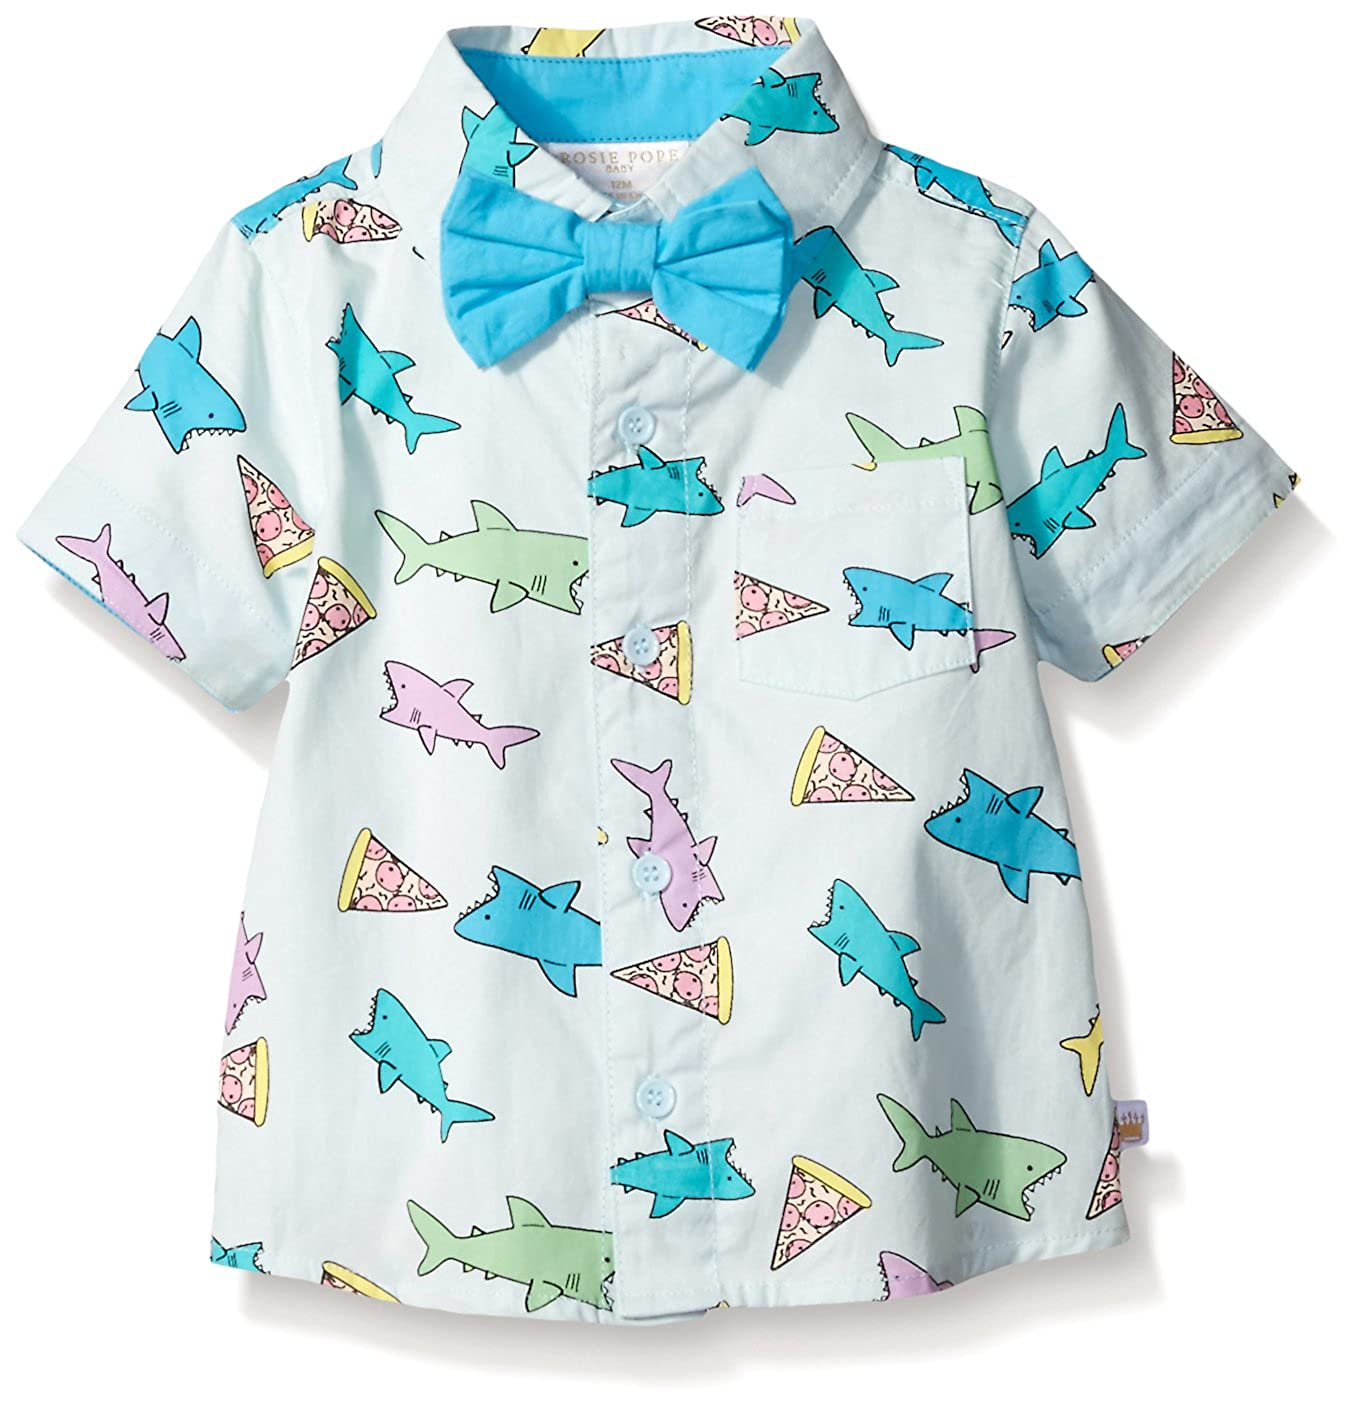 Rosie Pope Baby Boys' Dress Shirt Dressshirt_B